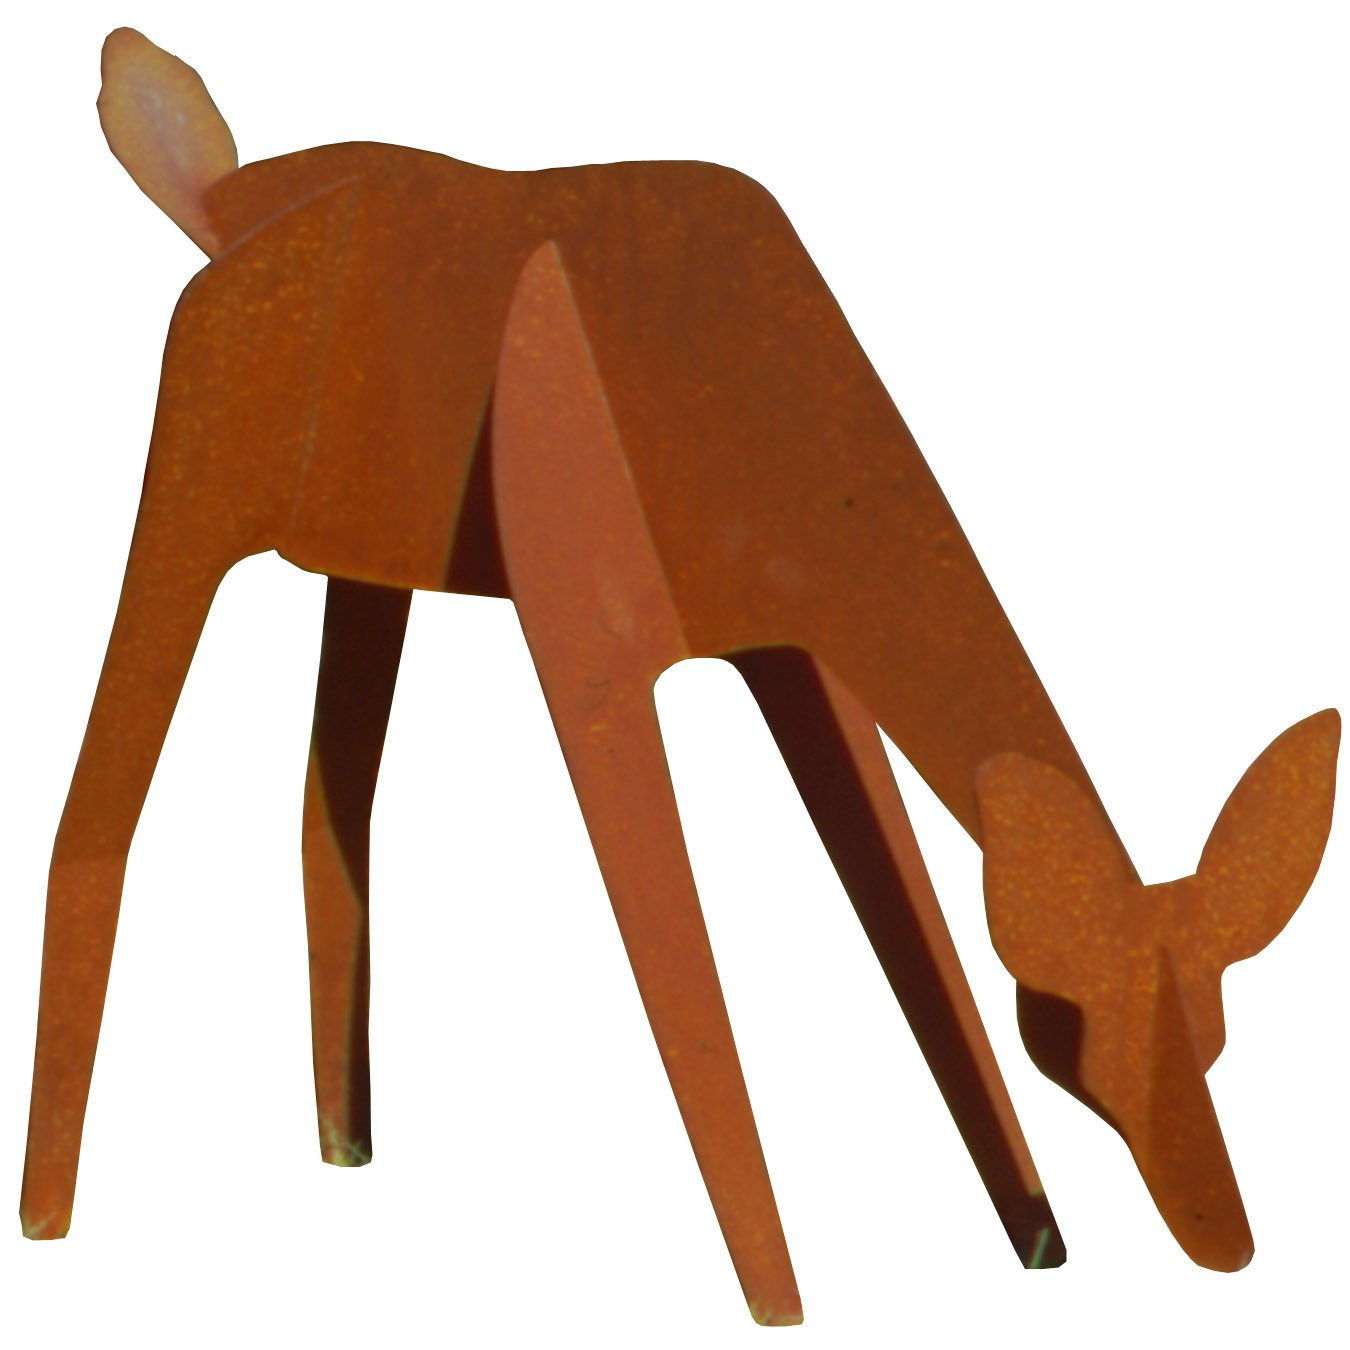 Fantasy Fauna LSGR-82 'Grazing' Doe Pre-Rusted Steel Sculpture, Life Size